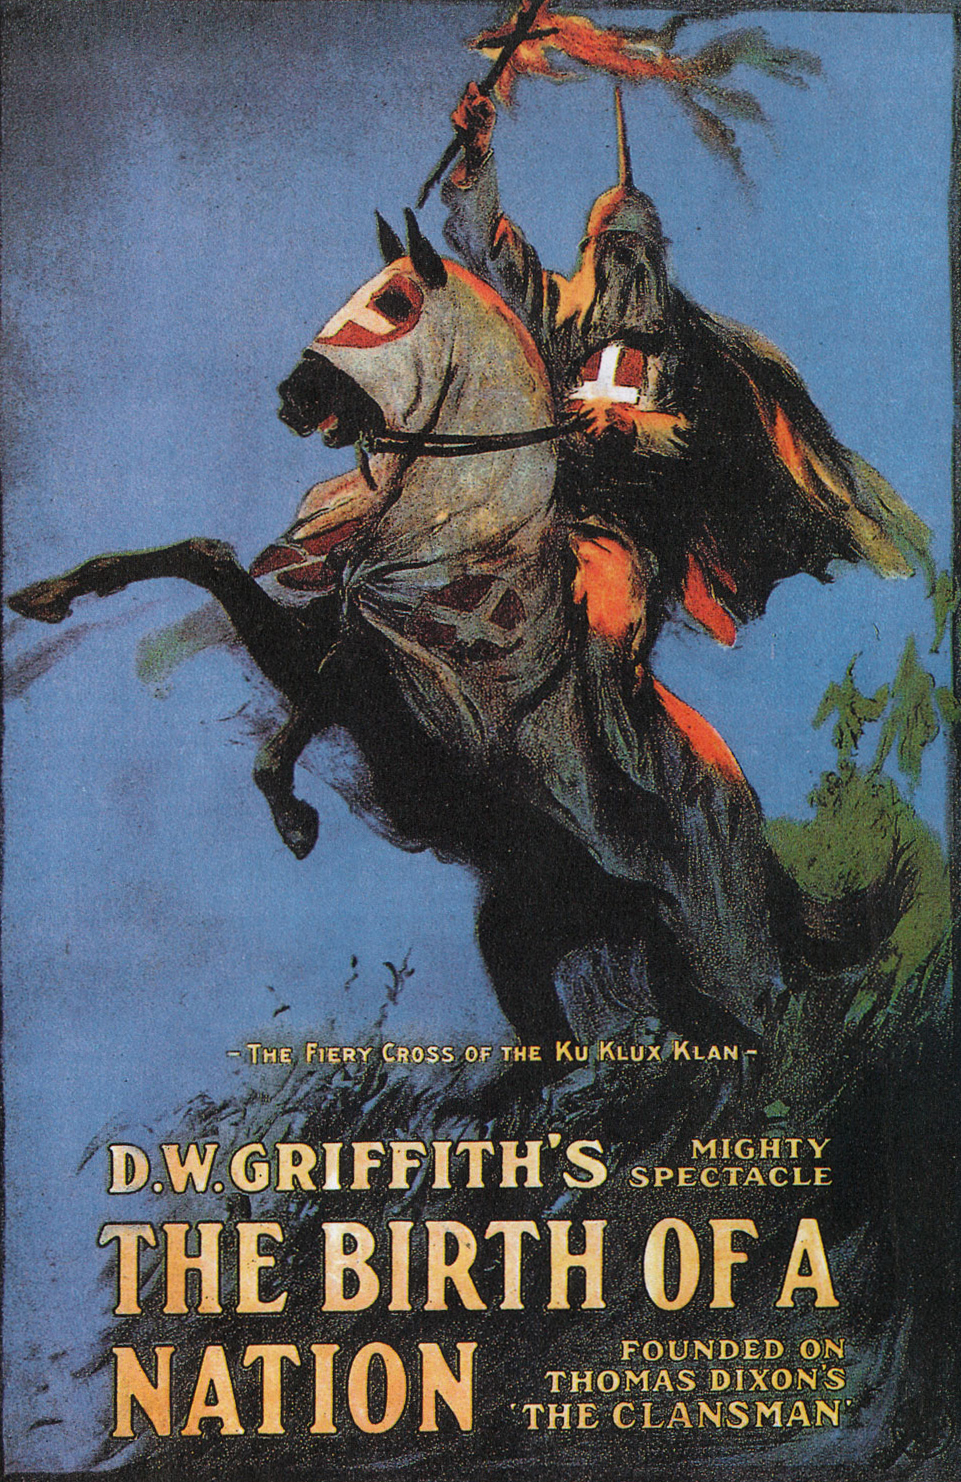 Poster for D.W. Griffith's Birth of a Nation. 1915.